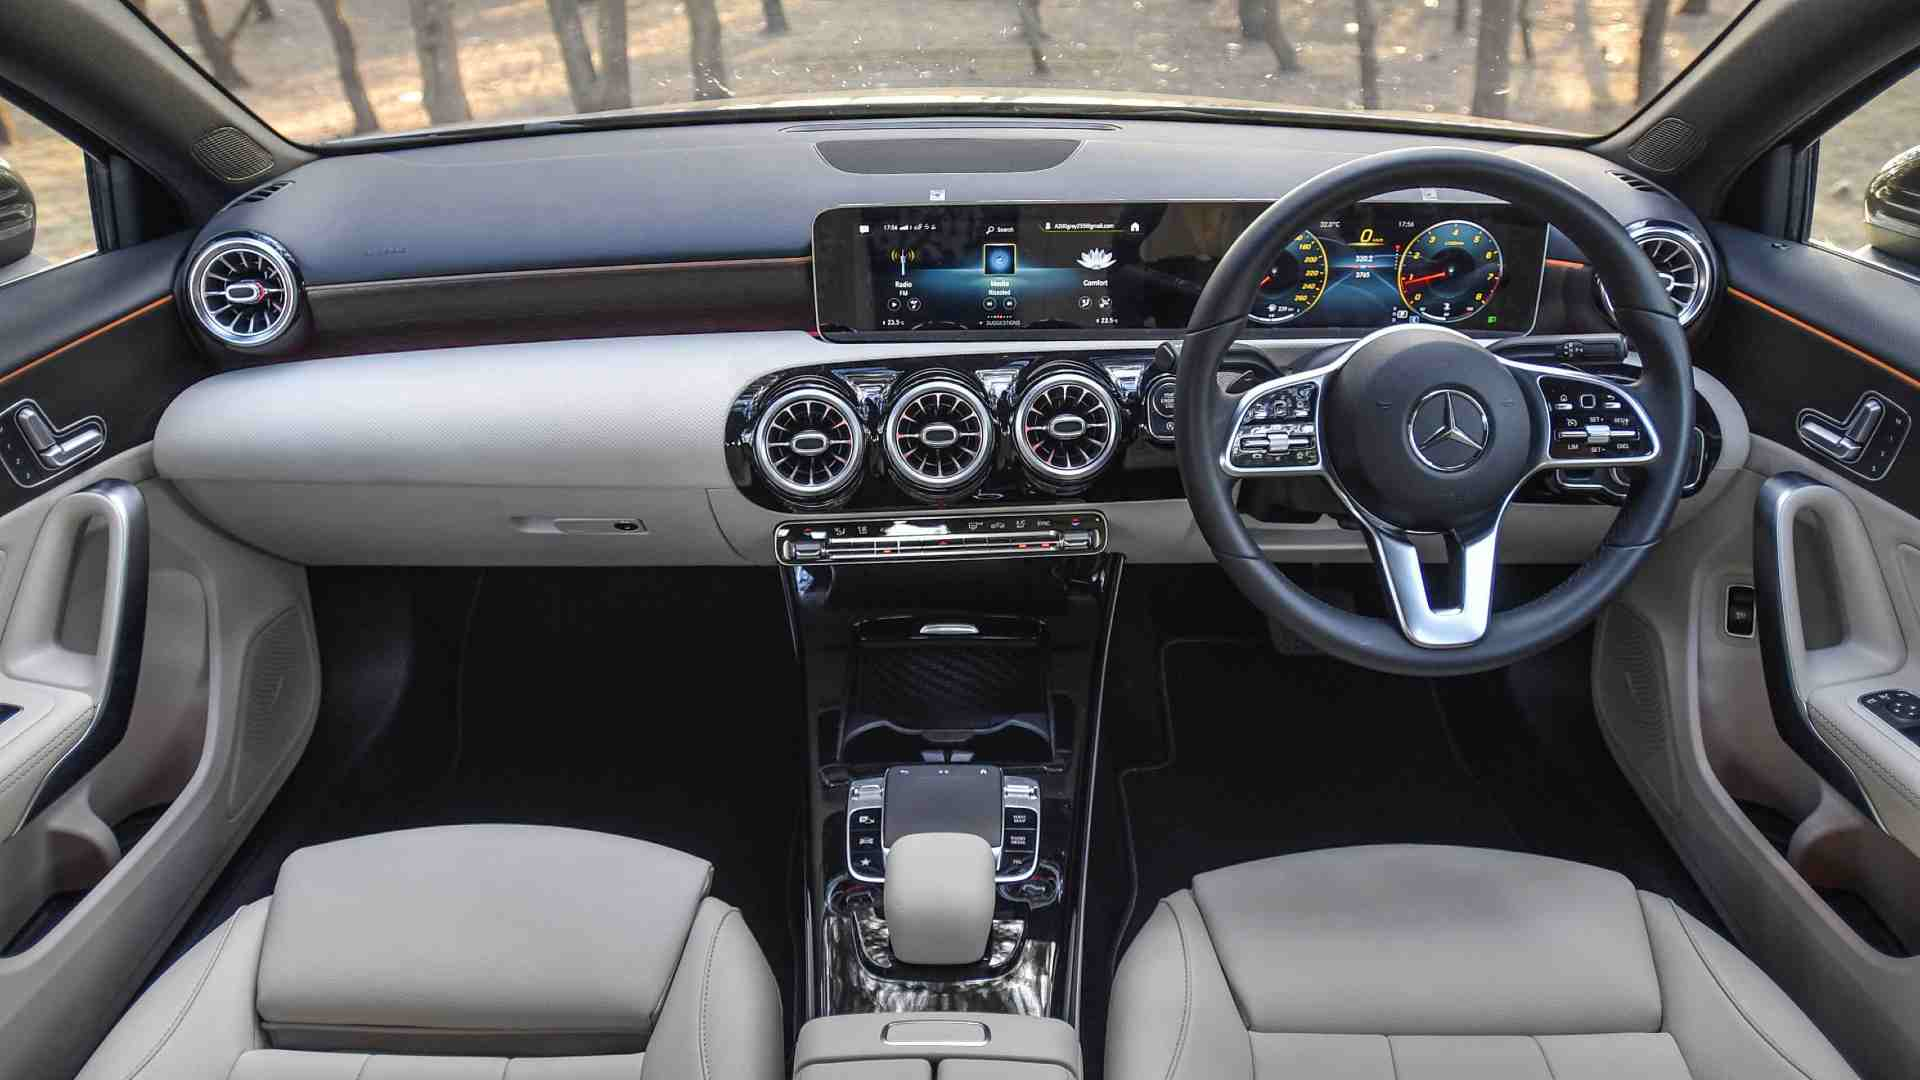 Two screens housed within a single pane of glass and turbine-style AC vents stand out on the minimalistic dash. Image: Overdrive/Anis Shaikh